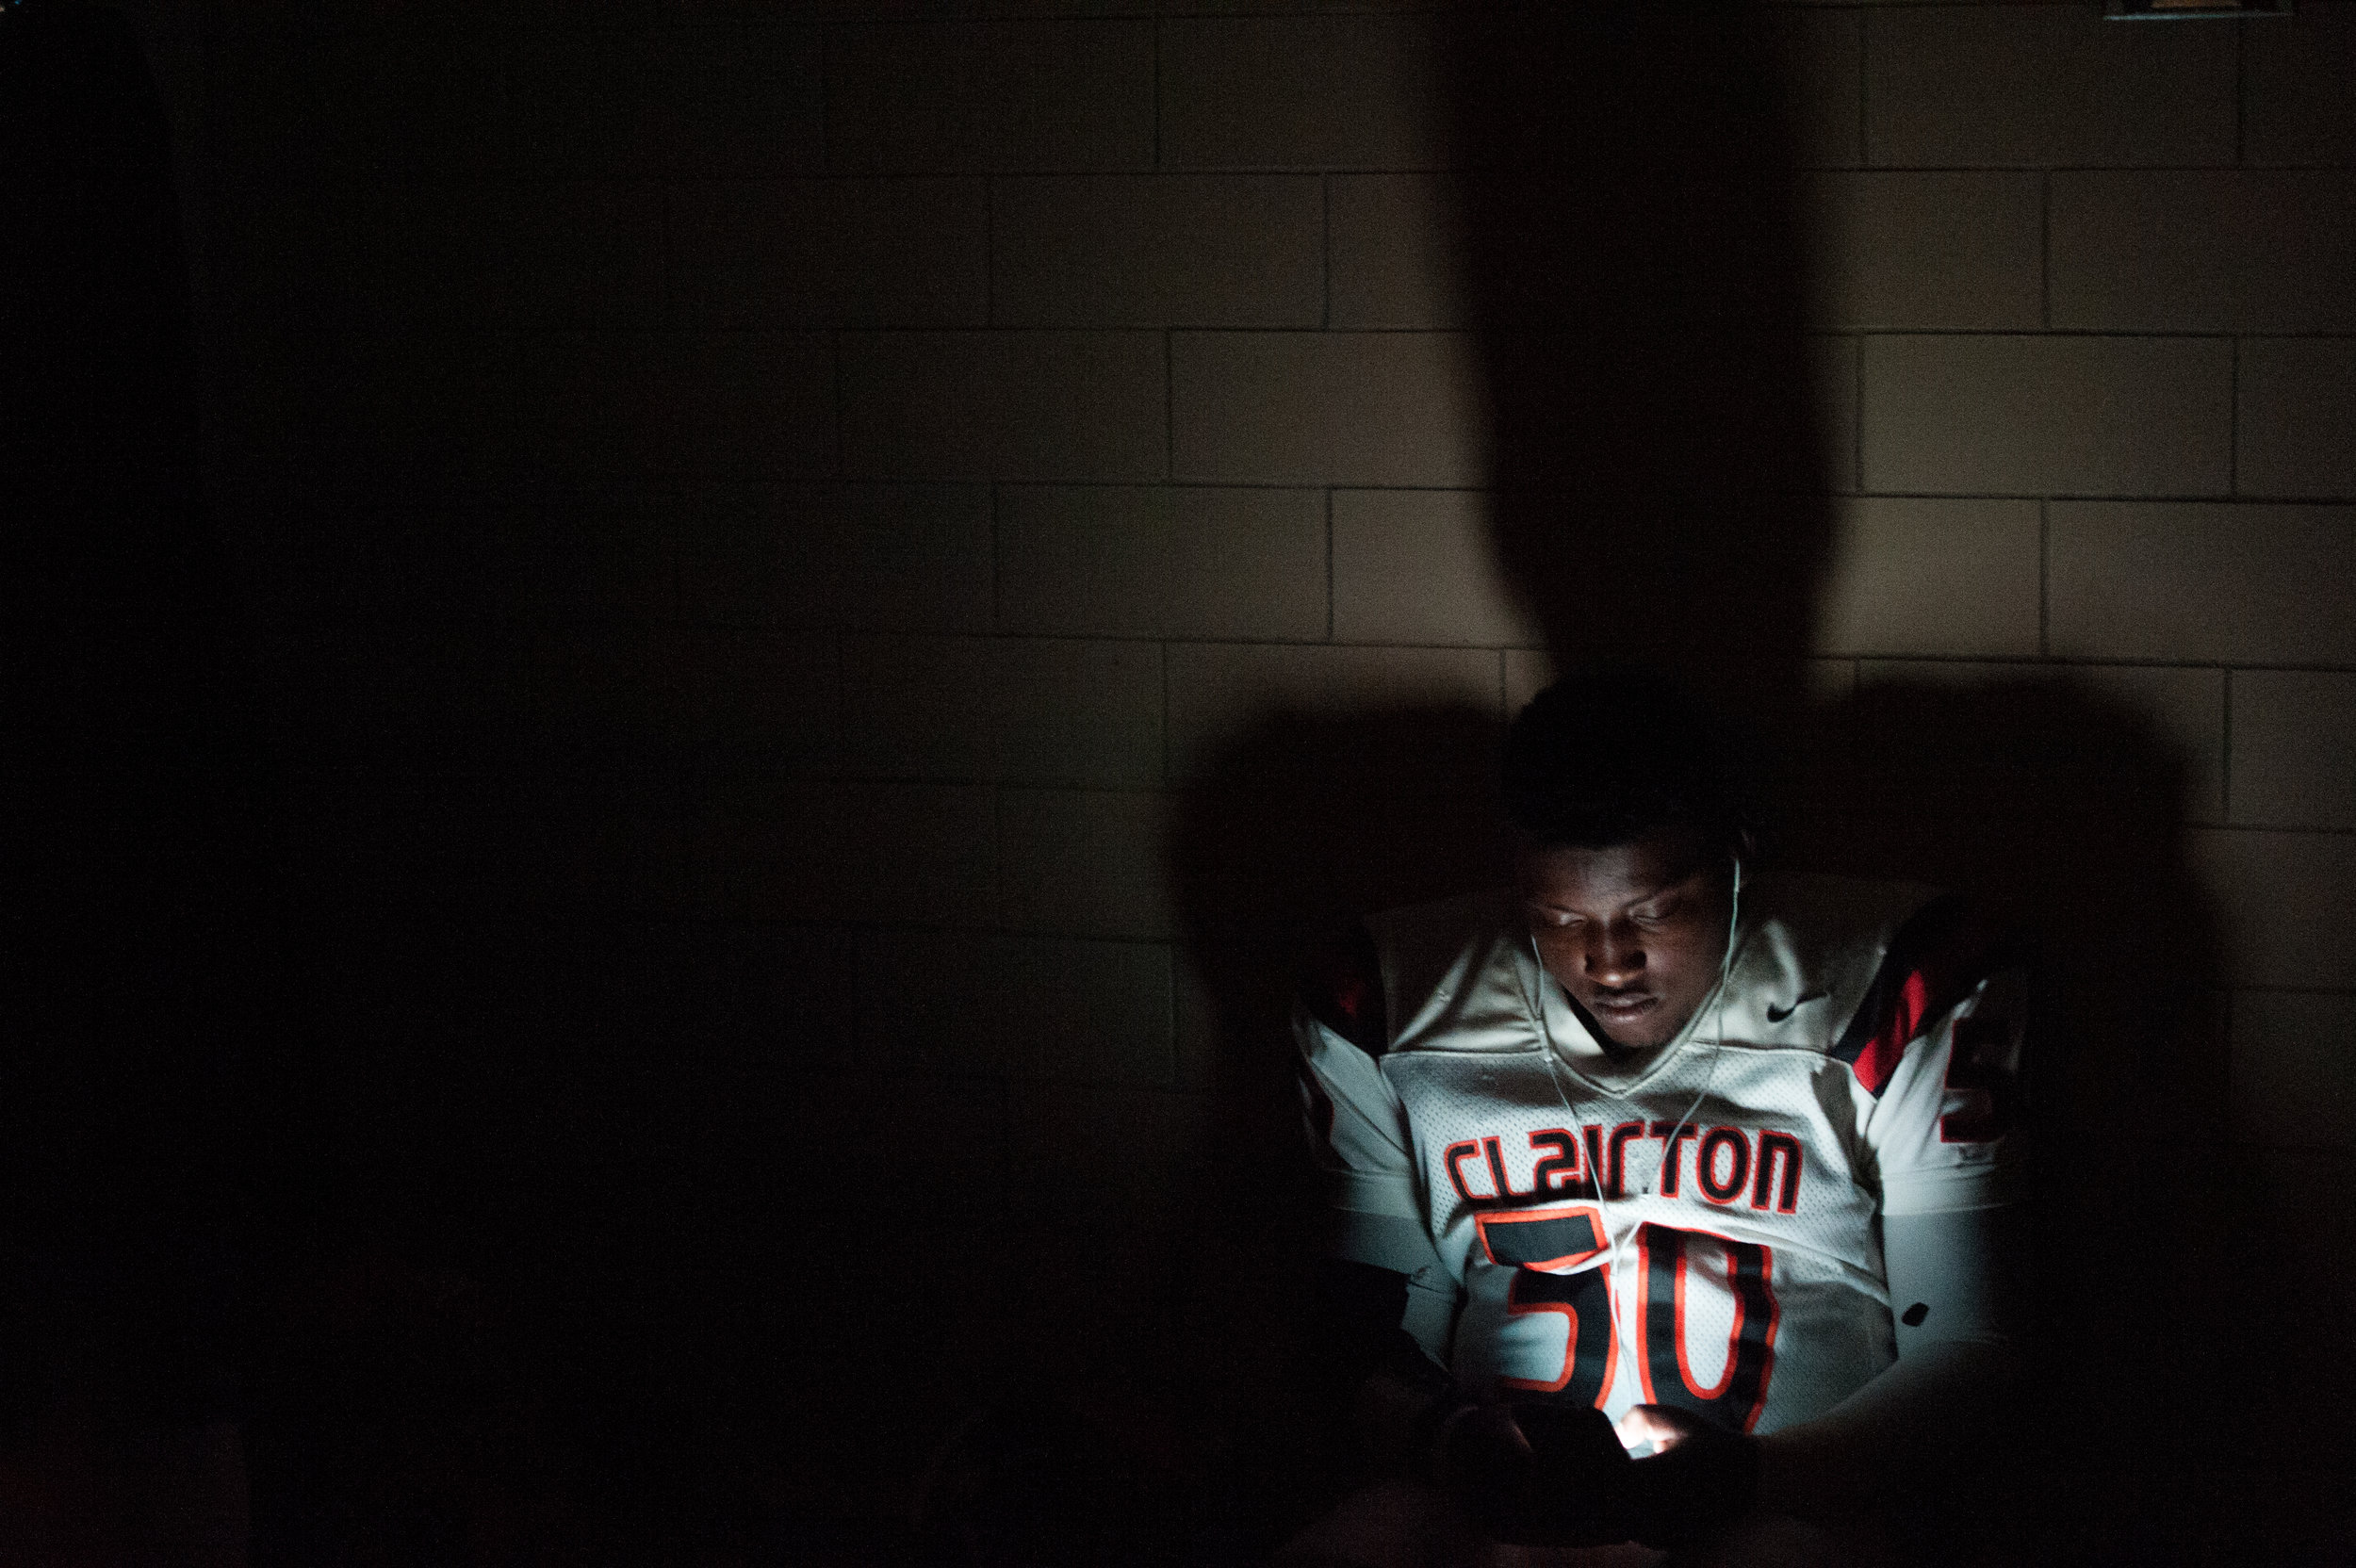 Clairton's Deonte Reddick prepares in the locker room before playing Jeannette on Friday, Oct. 28, 2016 at Jeannette's McKee Stadium. Clairton beat Jeannette 32-13.